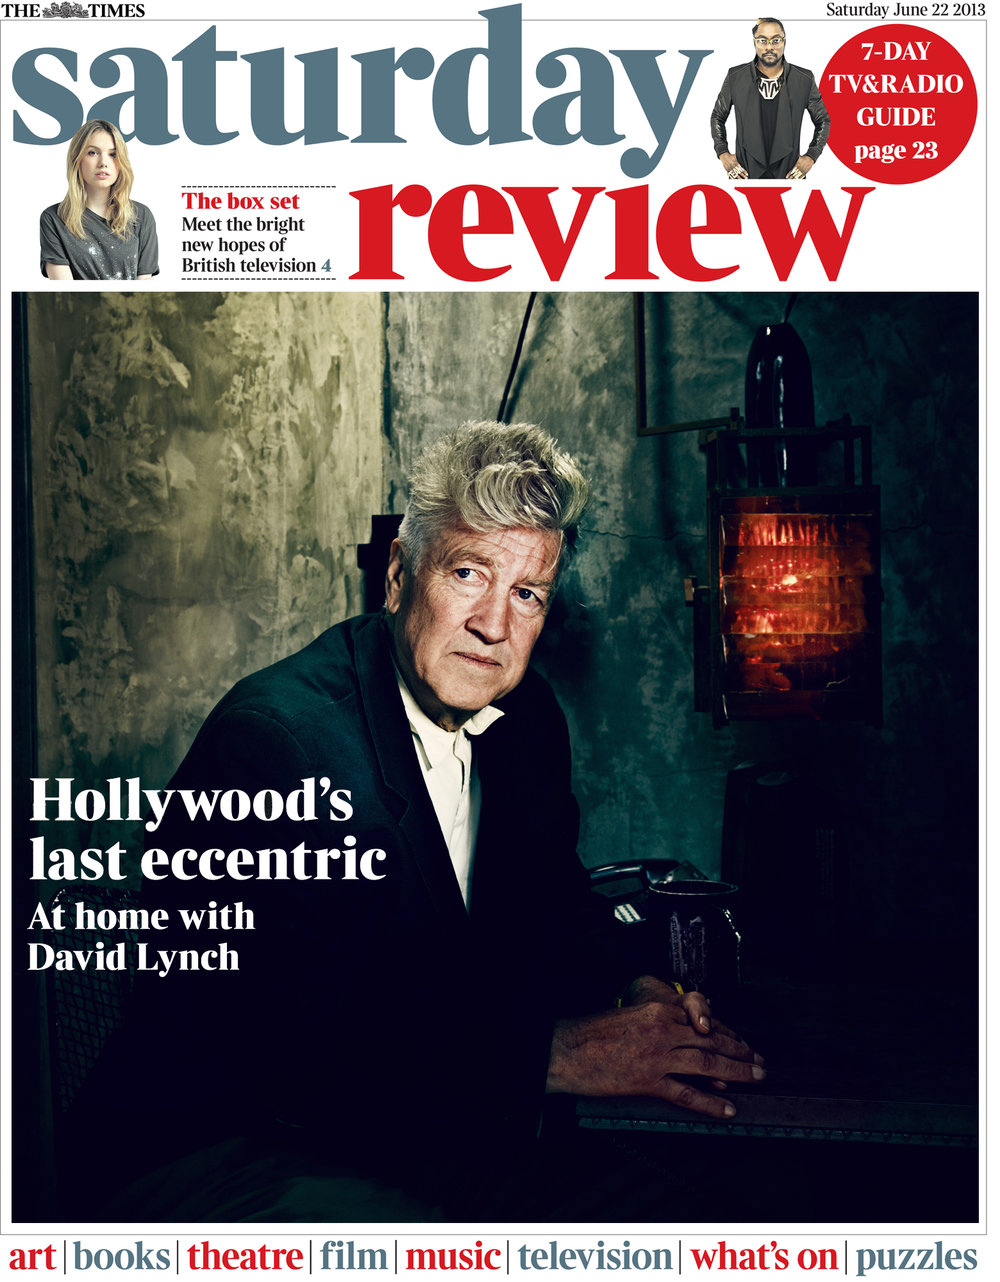 lynch-cover.jpg